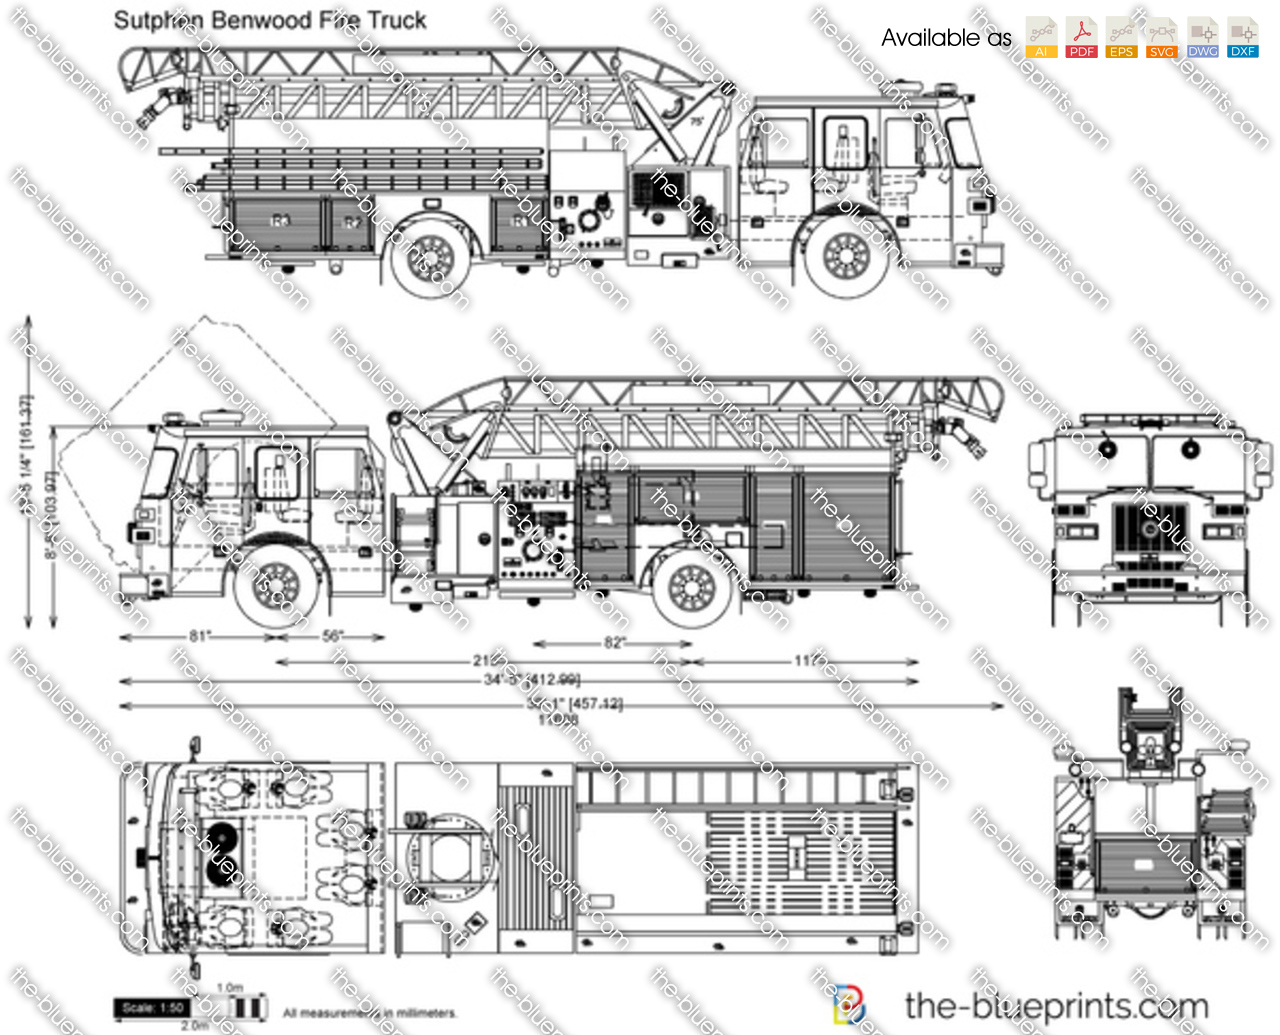 Sutphen Benwood Fire Truck vector drawing